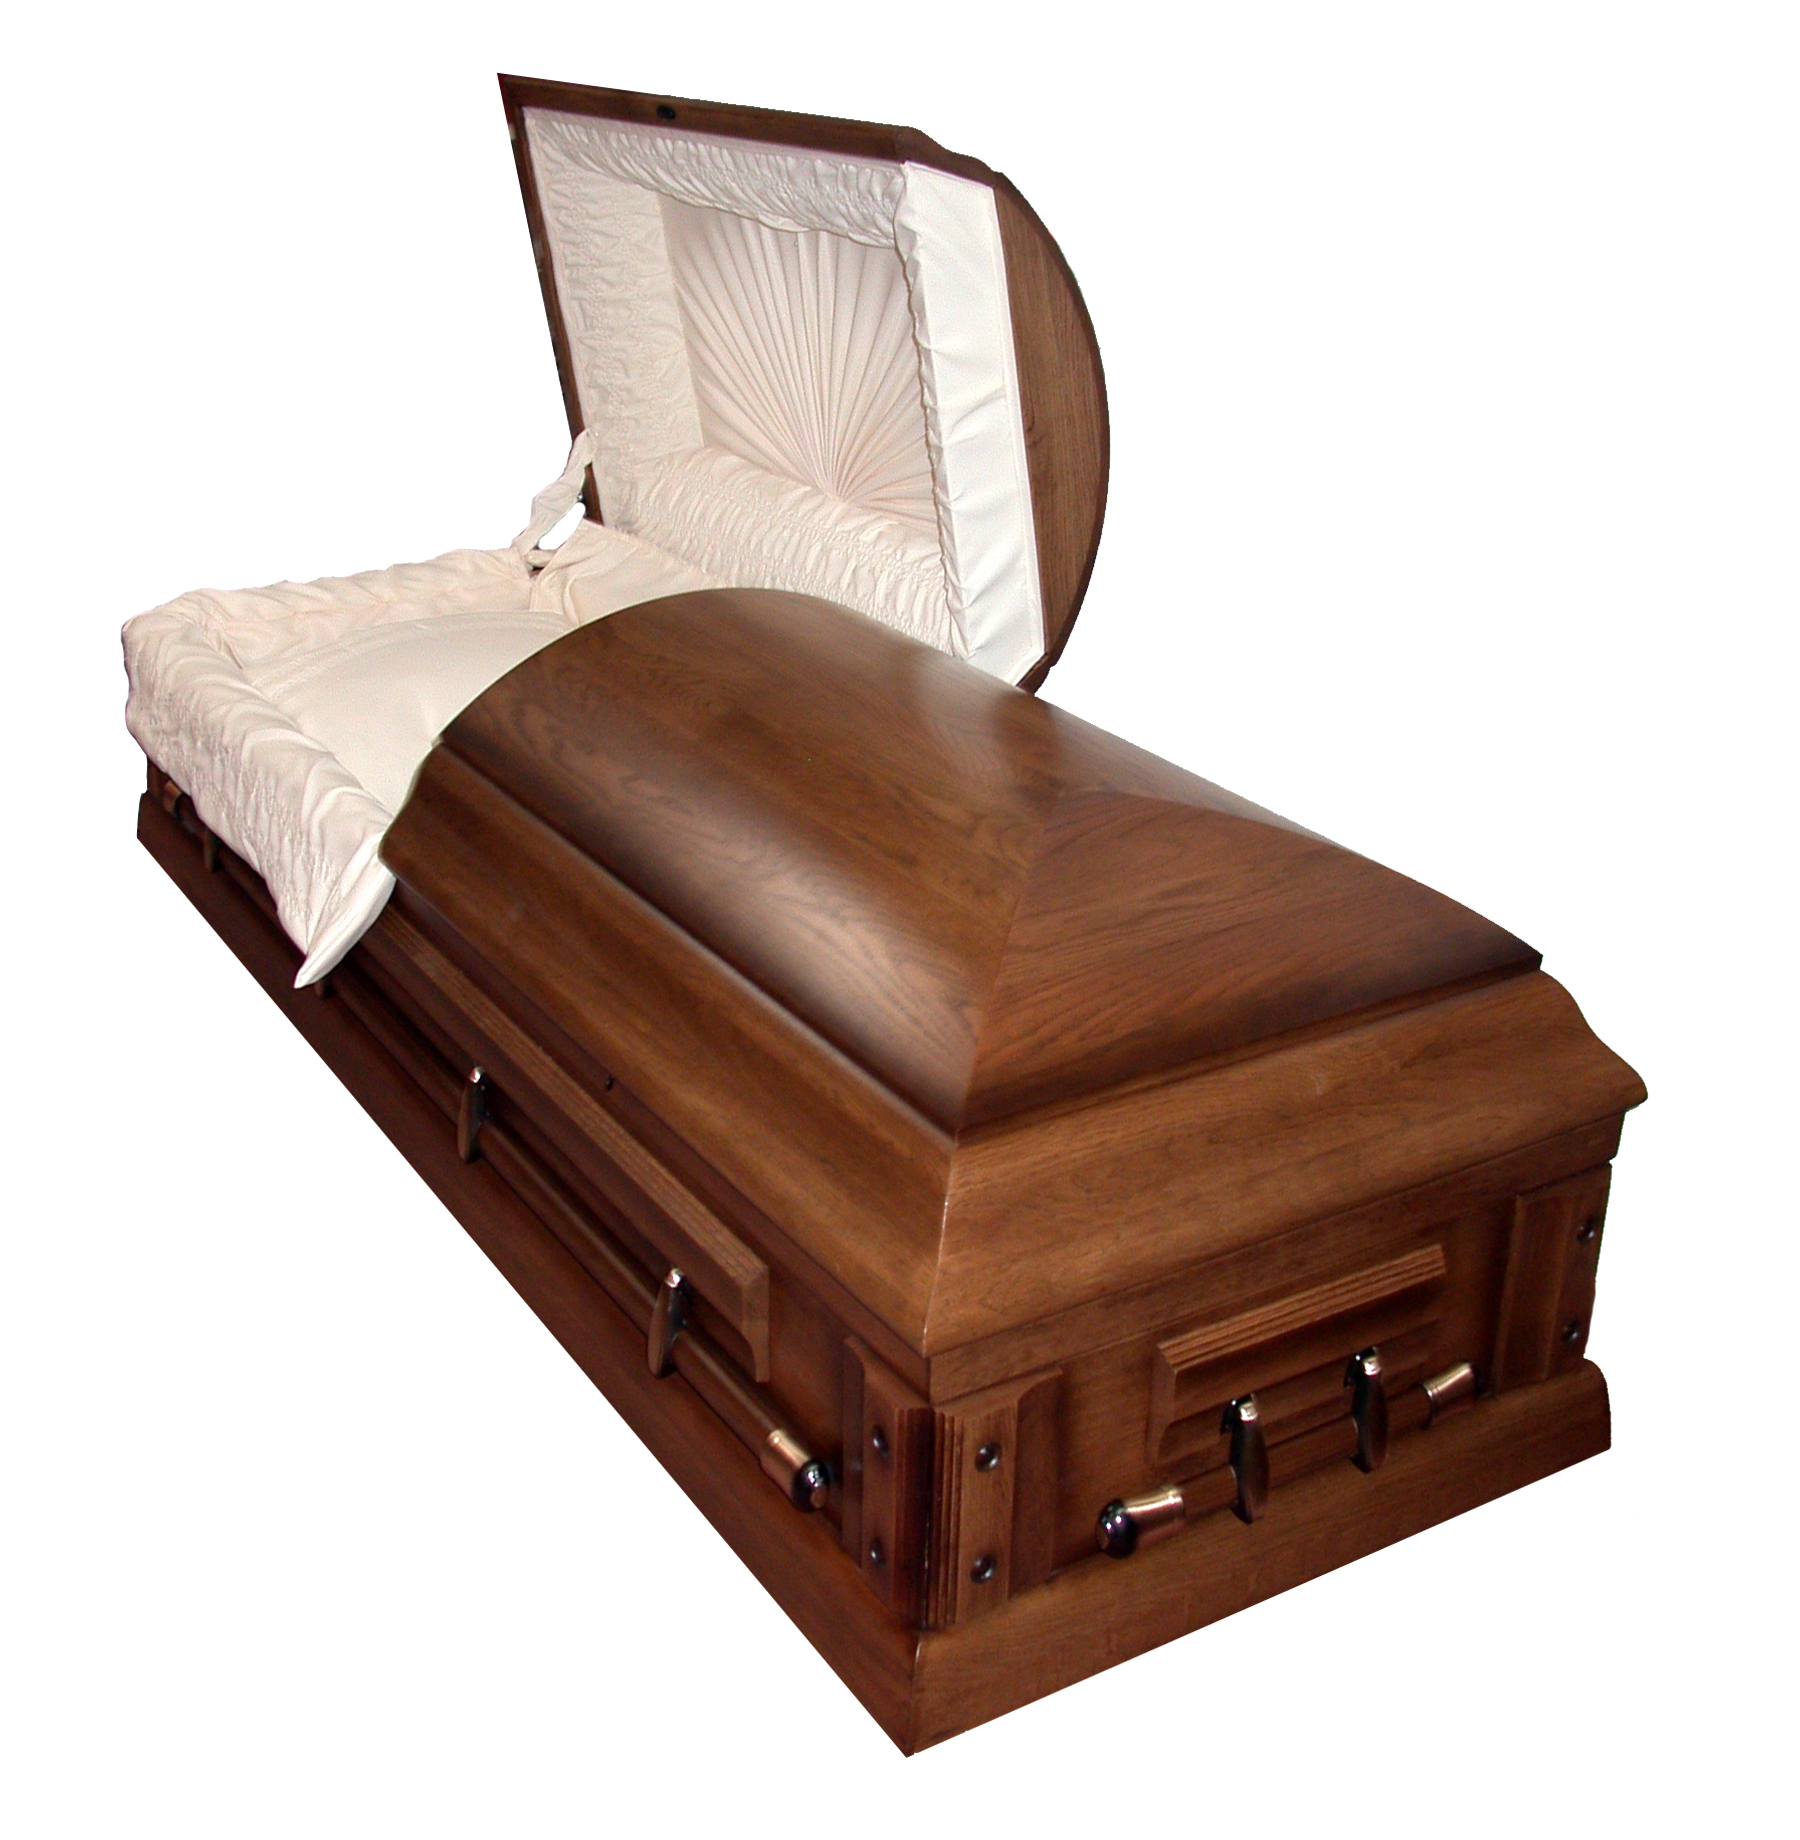 [Image: coffin.jpg]